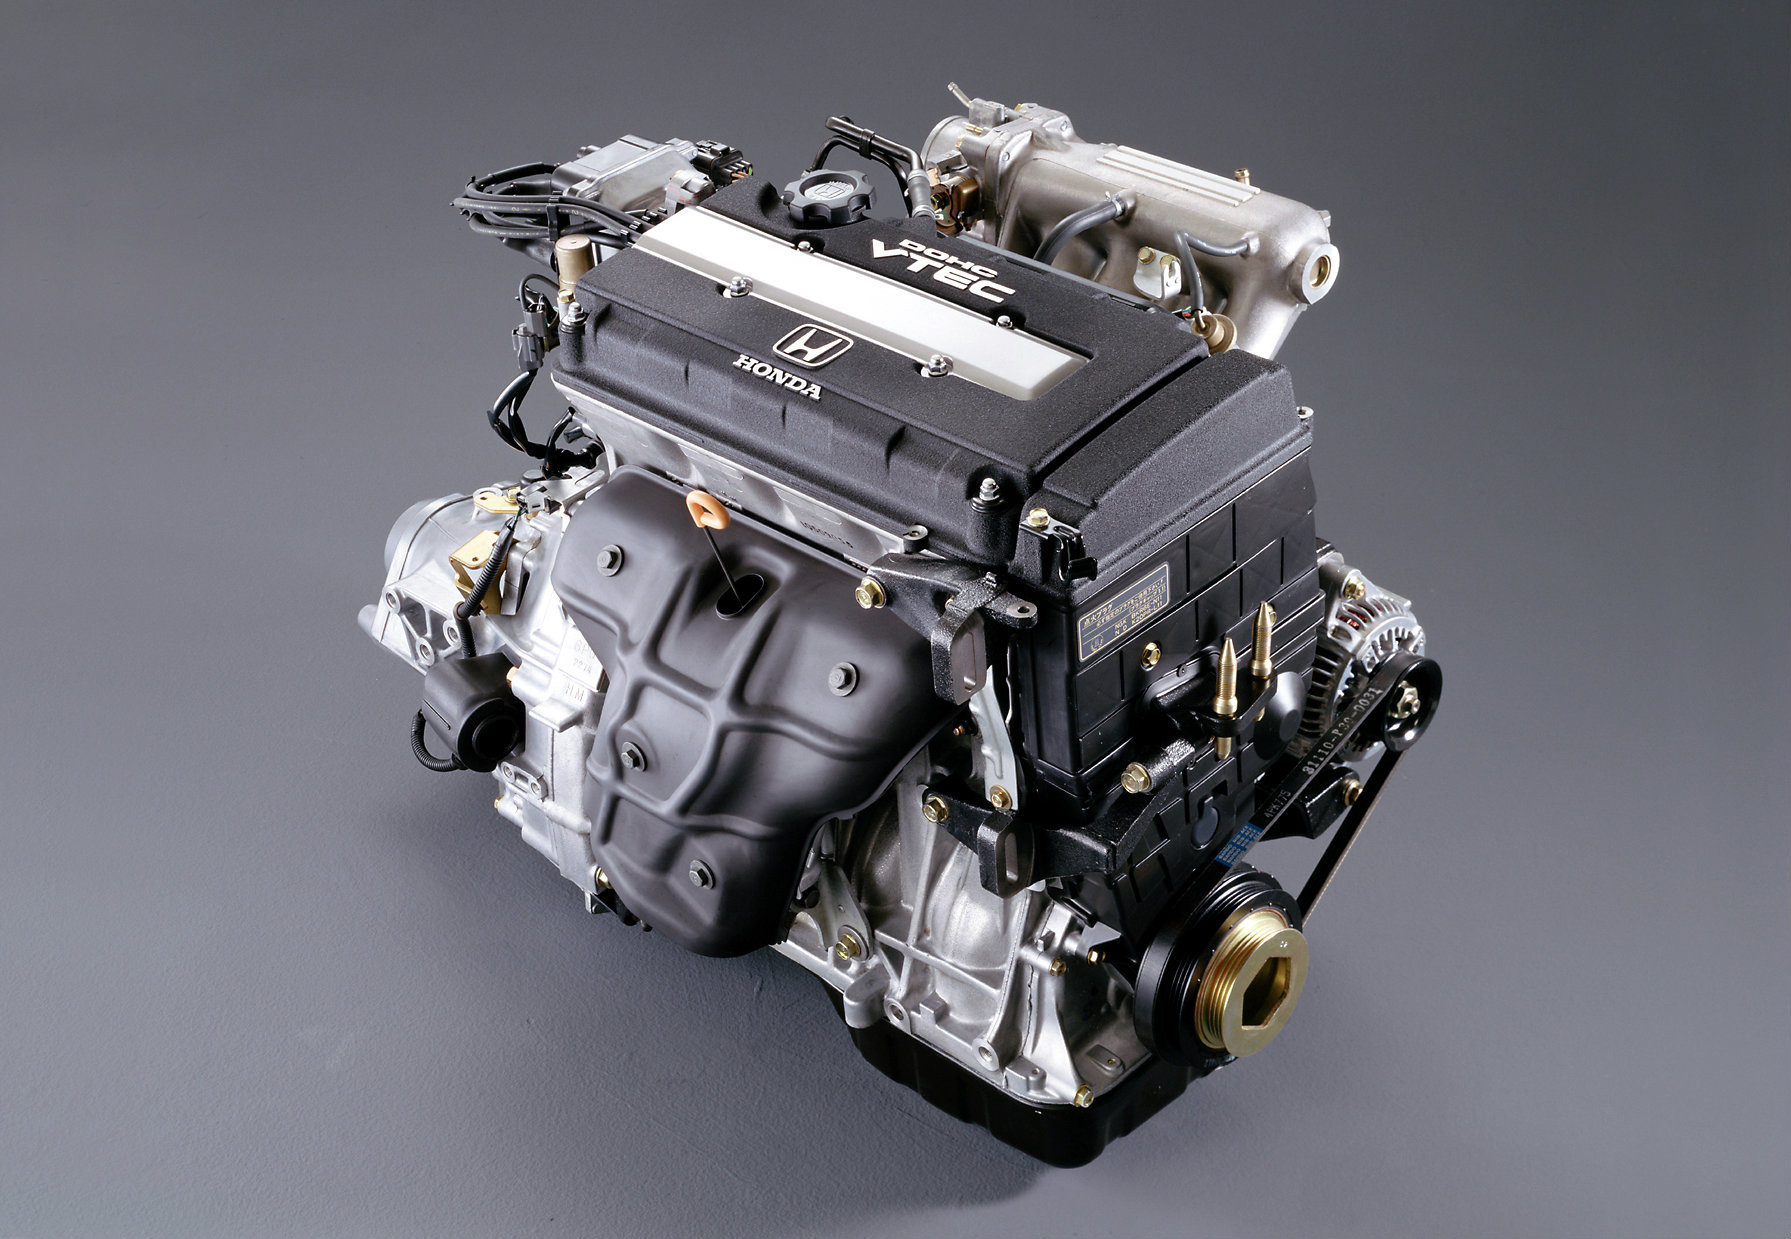 Honda's DOHC VTEC technology is an engineering marvel | Torque